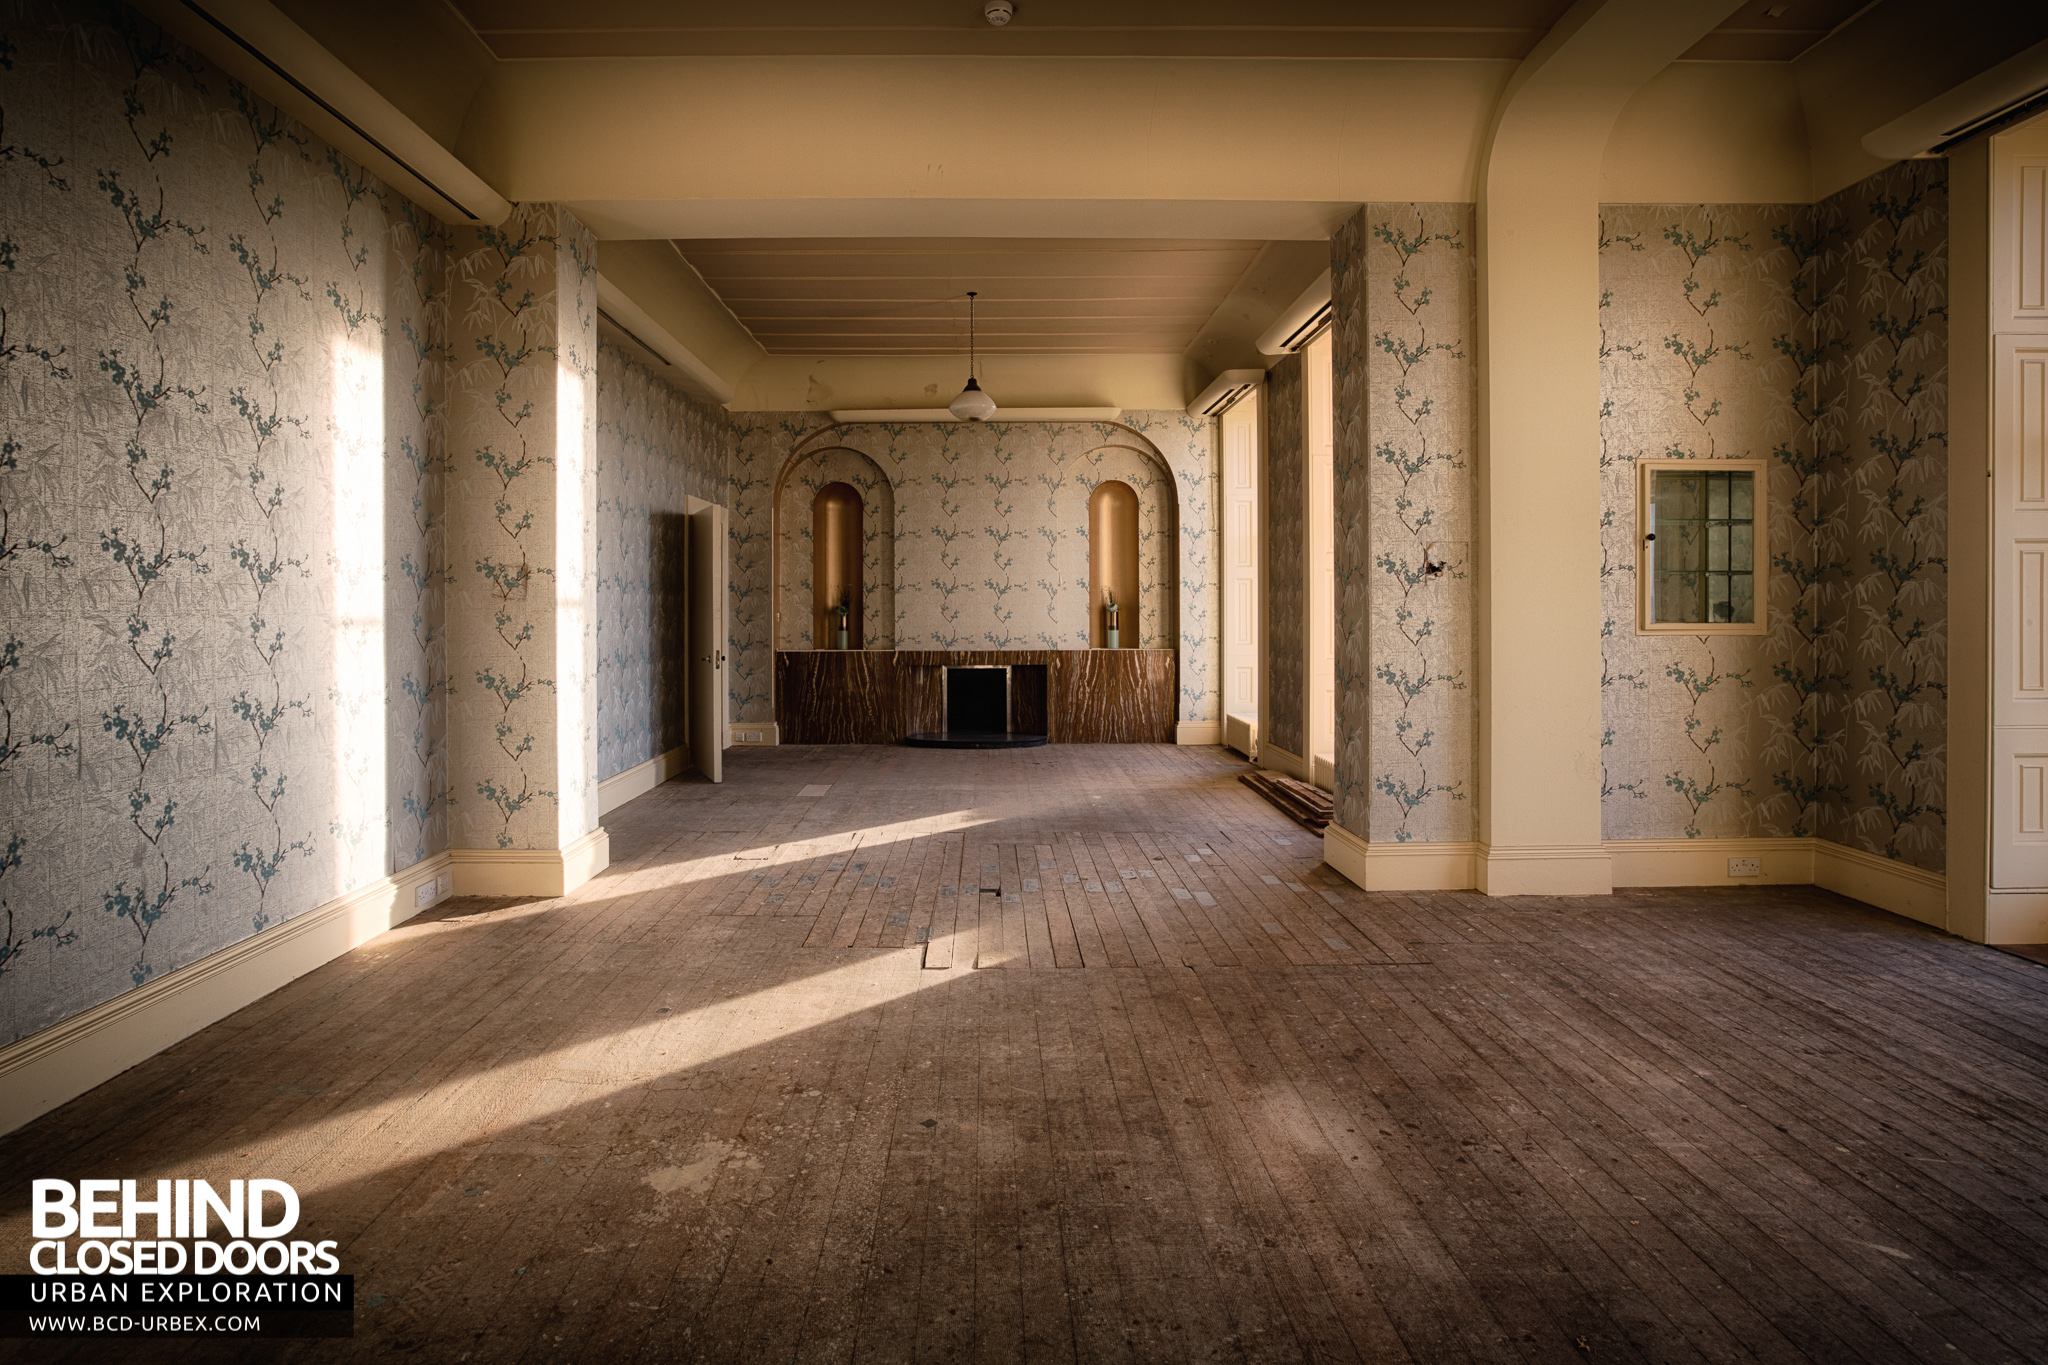 stanford hall nottinghamshire uk urbex behind closed